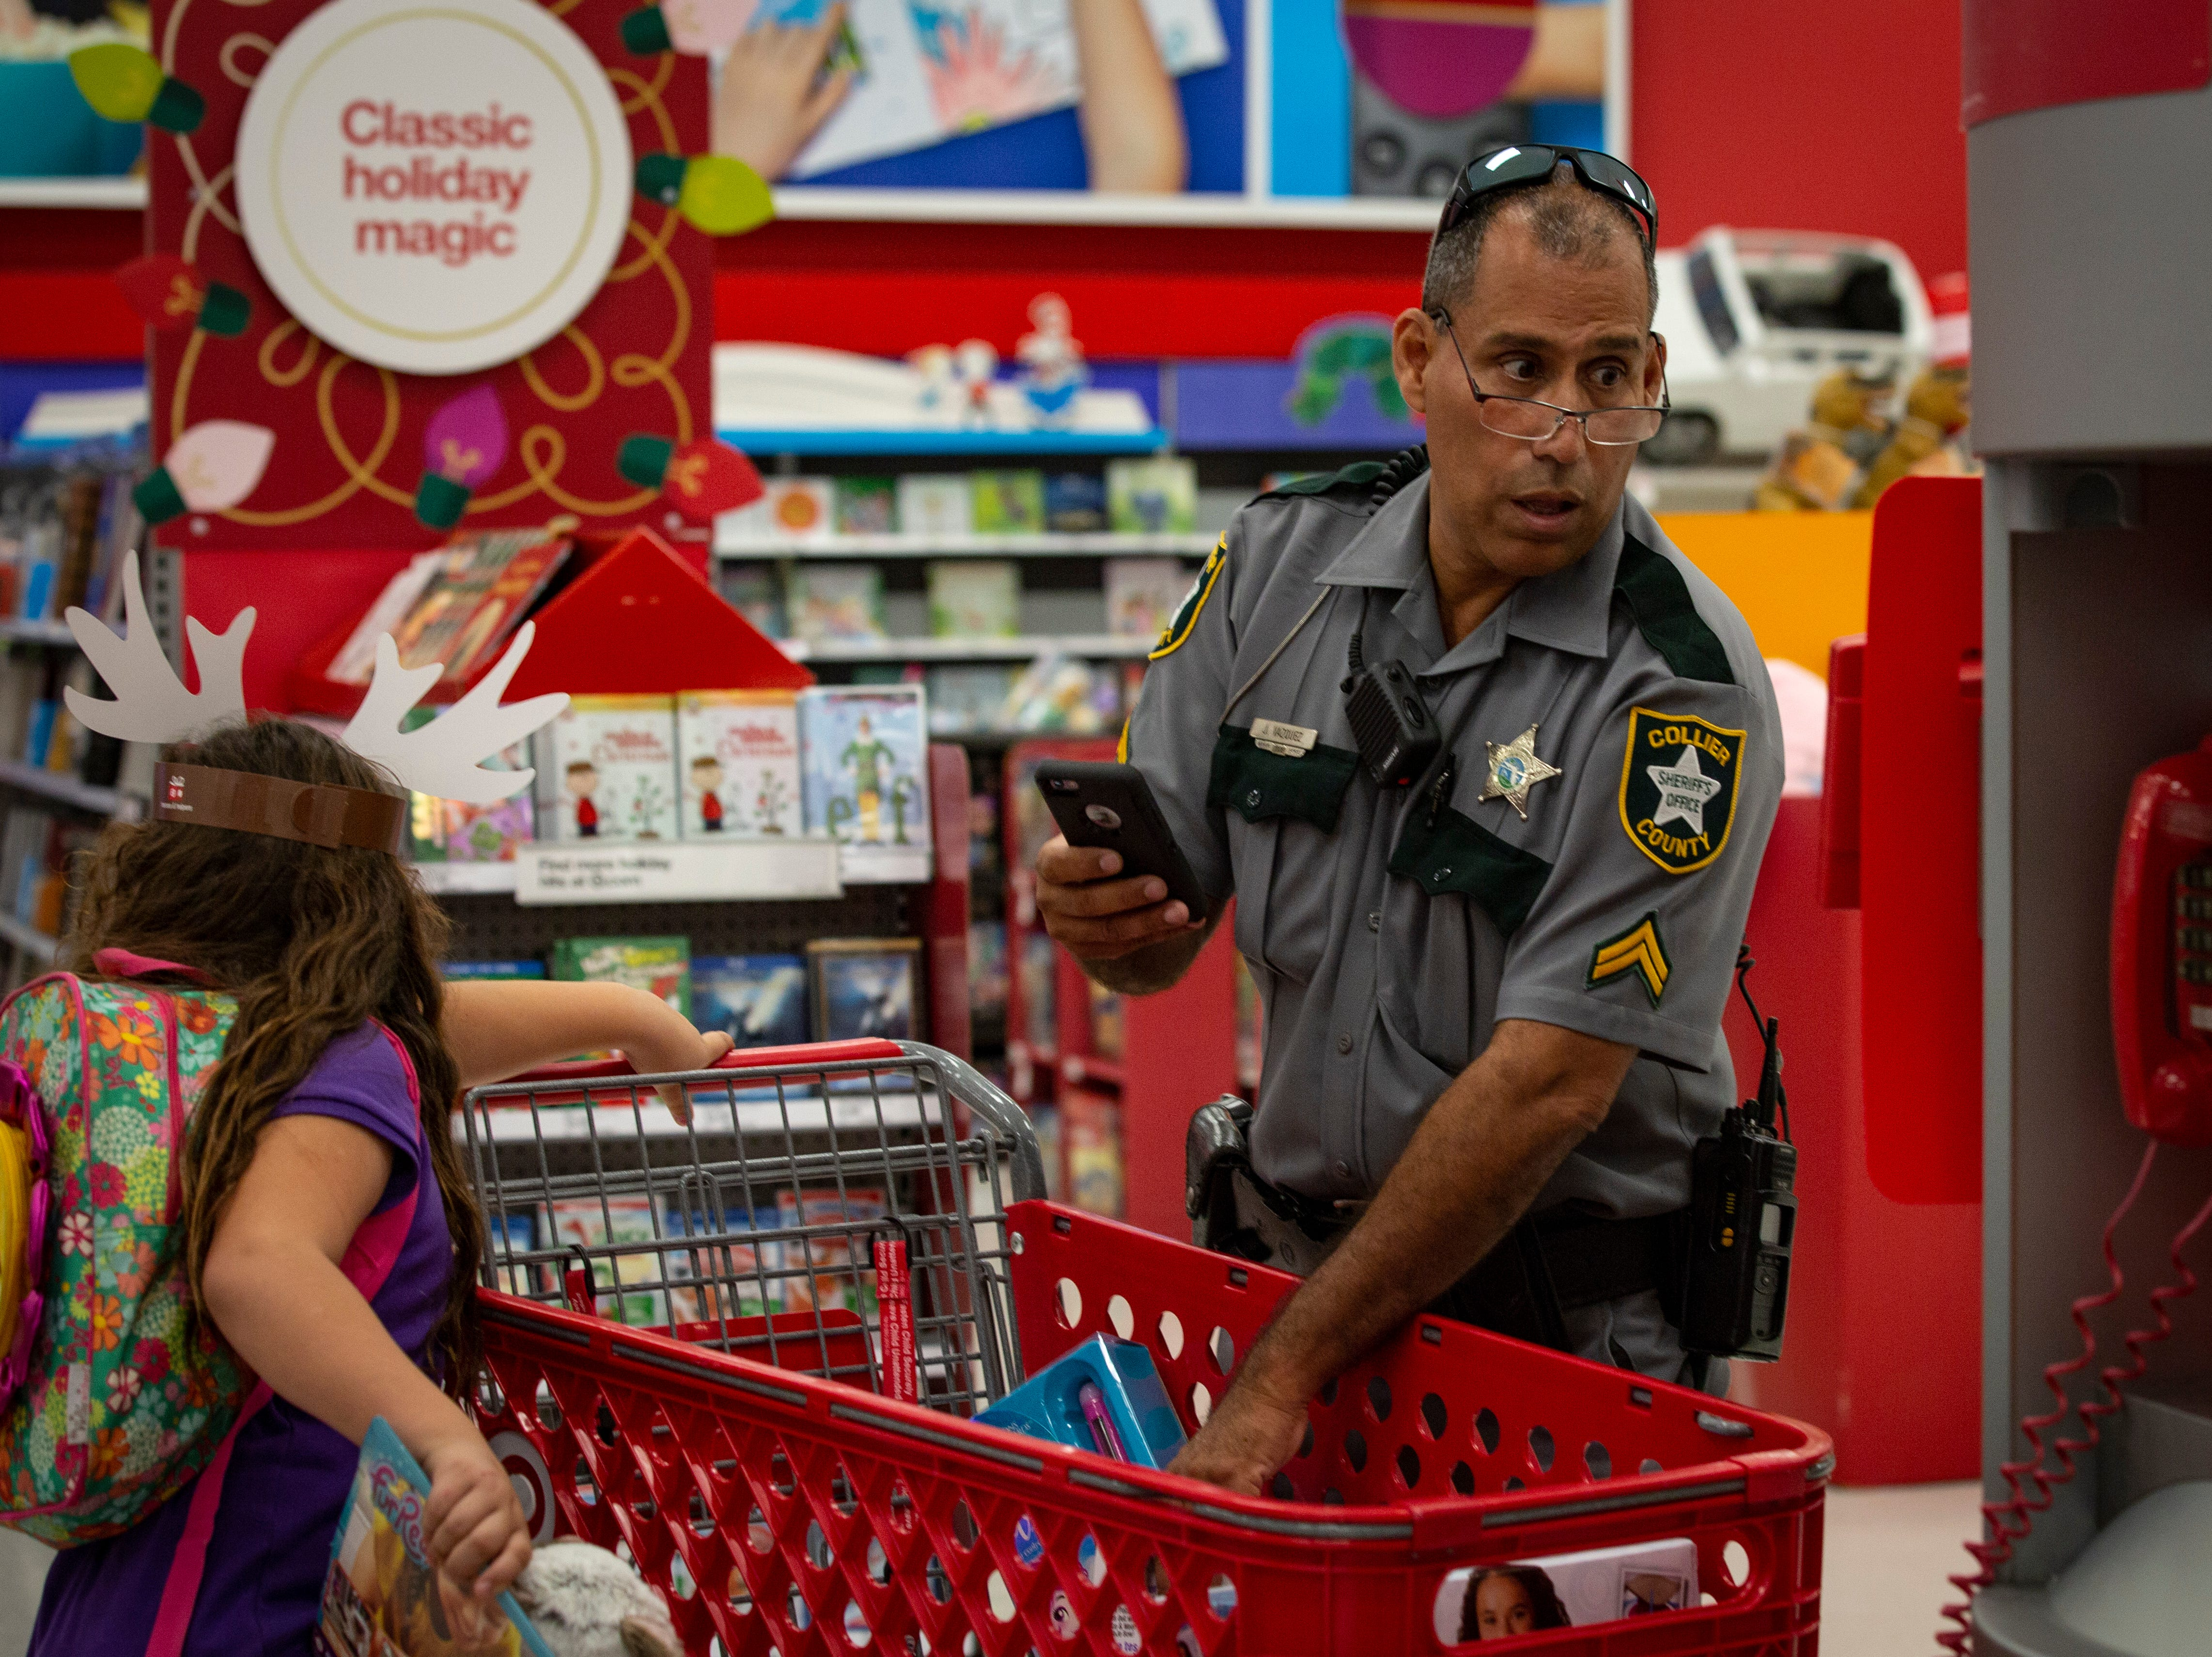 Officer Juan Vazquez looks over at the barcode scanner unable to get his calculates right during the ÒShop With a SheriffÓ event at Target in North Naples on Tuesday, December 18, 2018. The Jewish Federation of Greater Naples partnered with the Collier County SheriffÕs Office for the fourth year in a row to help 78 children and their families during the holiday season.